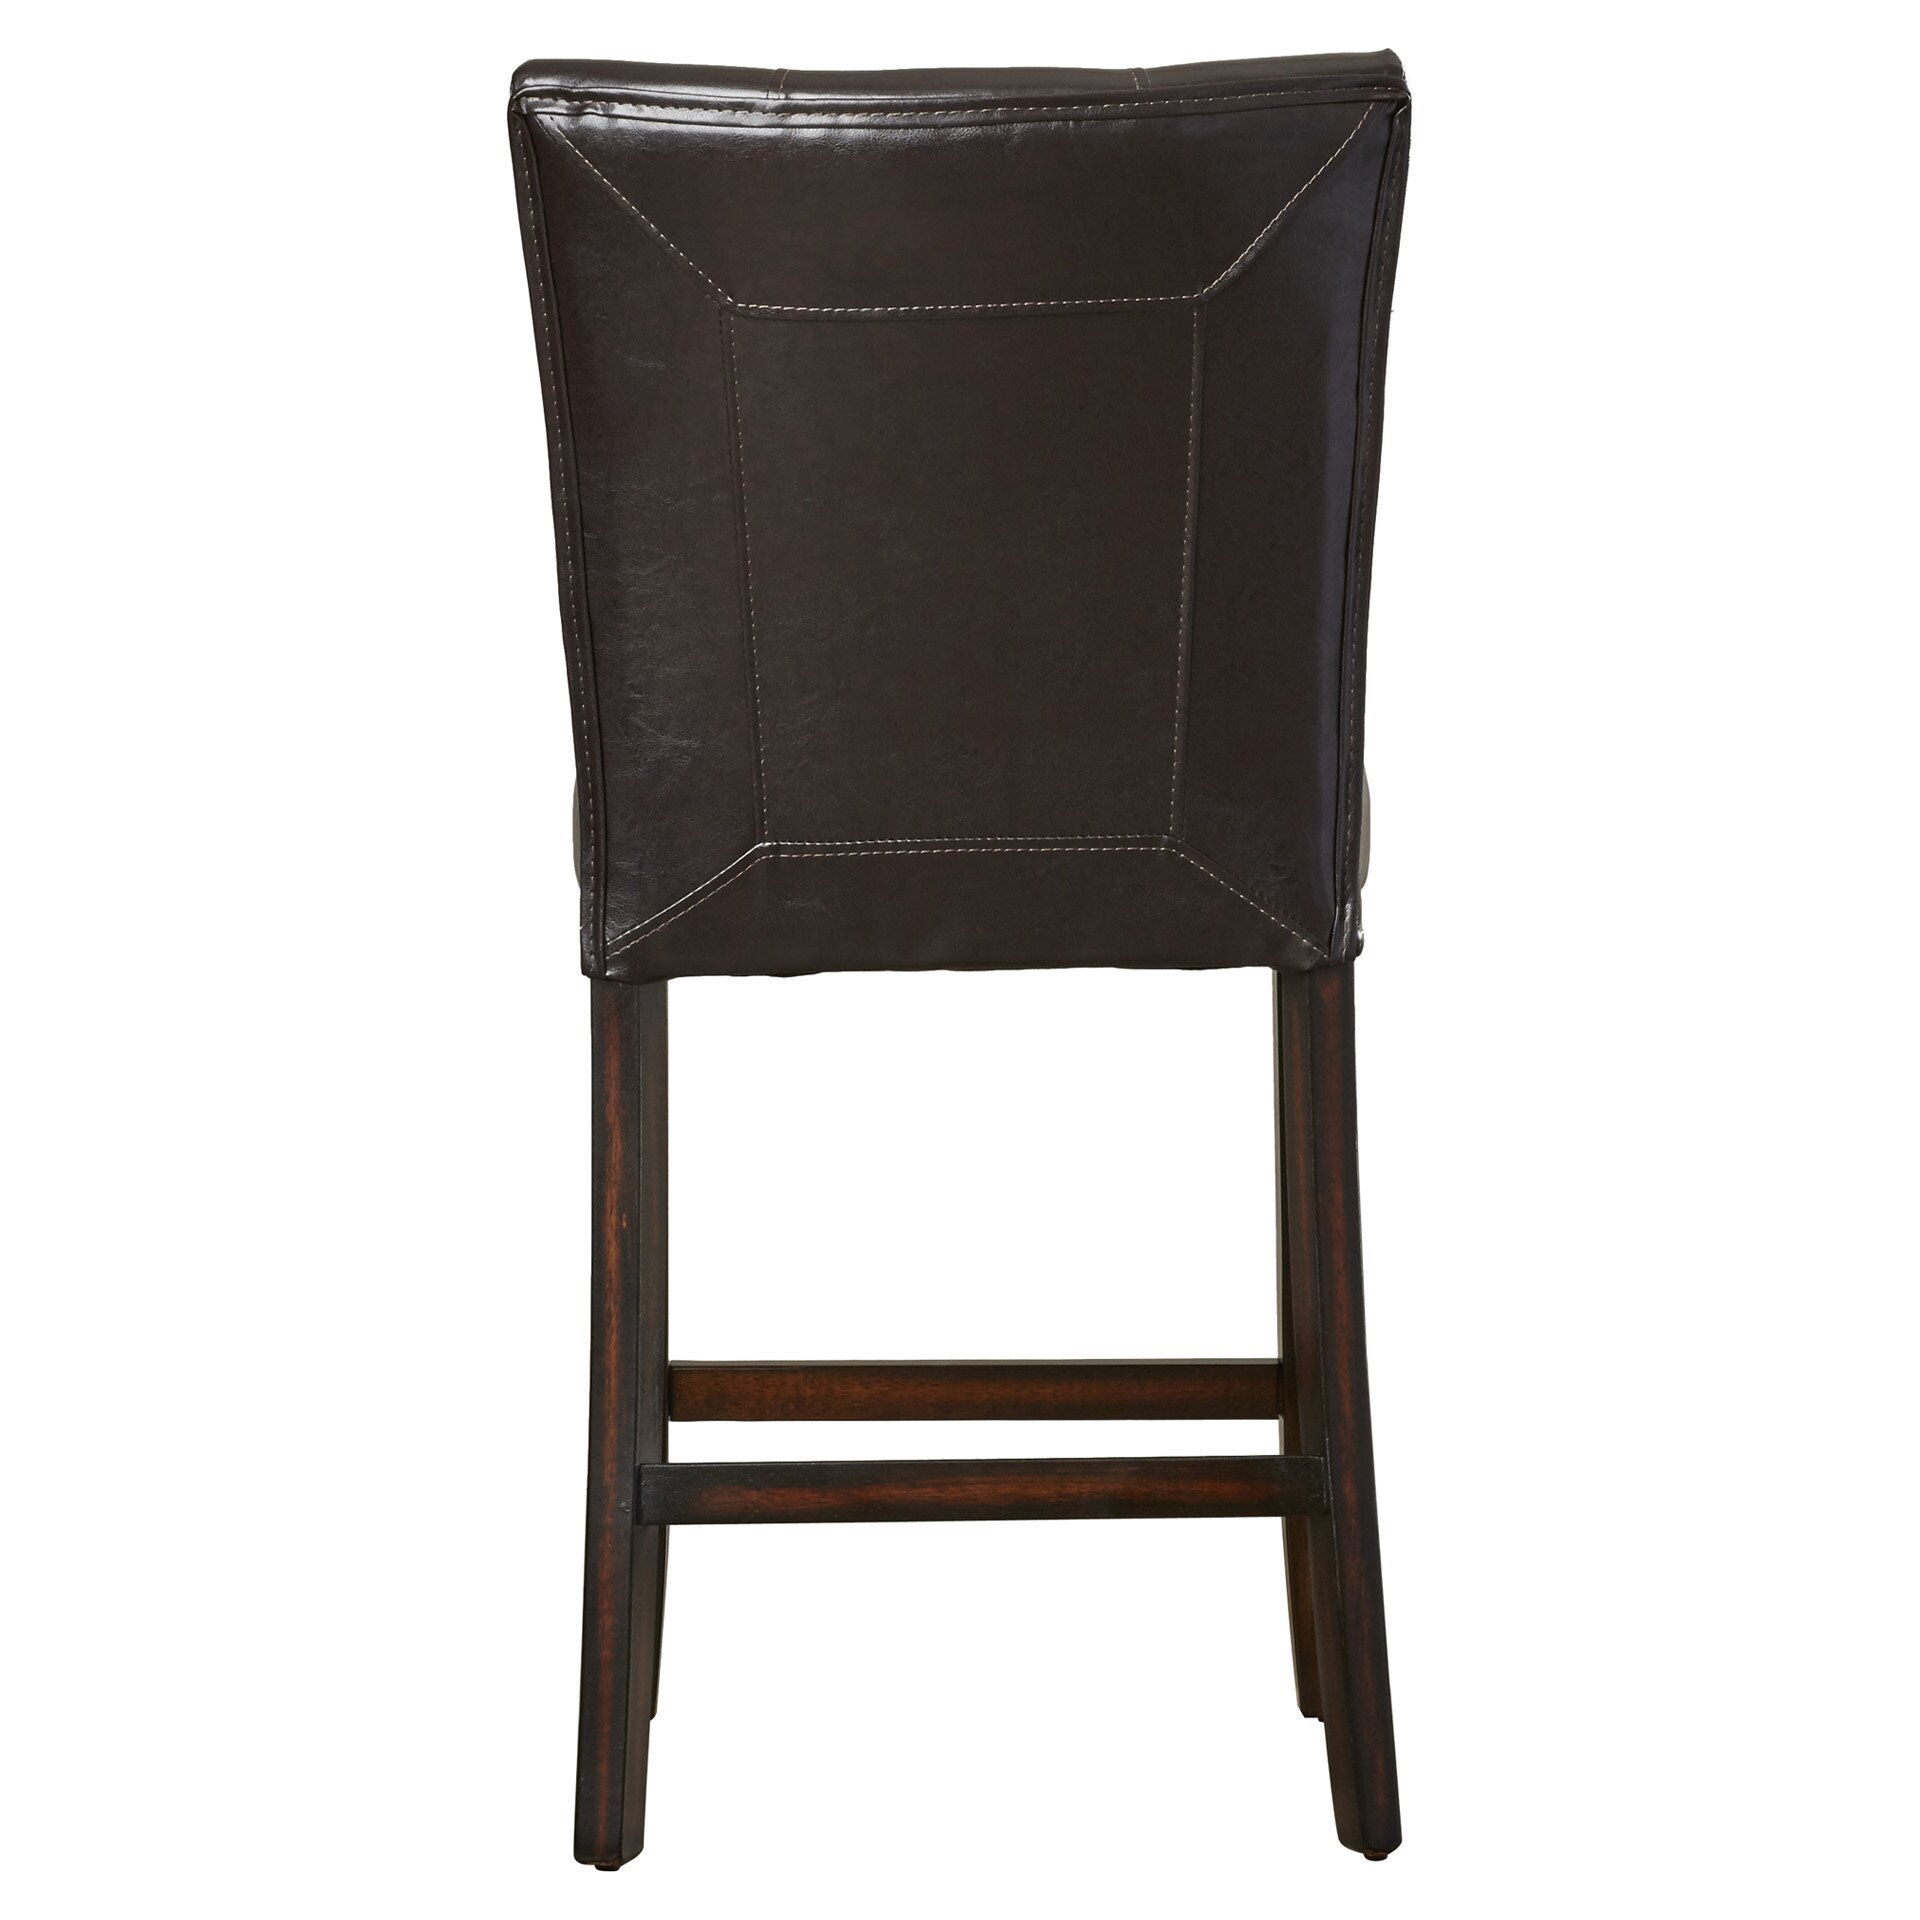 Alcott Hill Doylestown 24quot Bar Stool with Cushion  : Walley 24 Bar Stool with Cushion ALCT3158 from www.wayfair.com size 1920 x 1920 jpeg 162kB